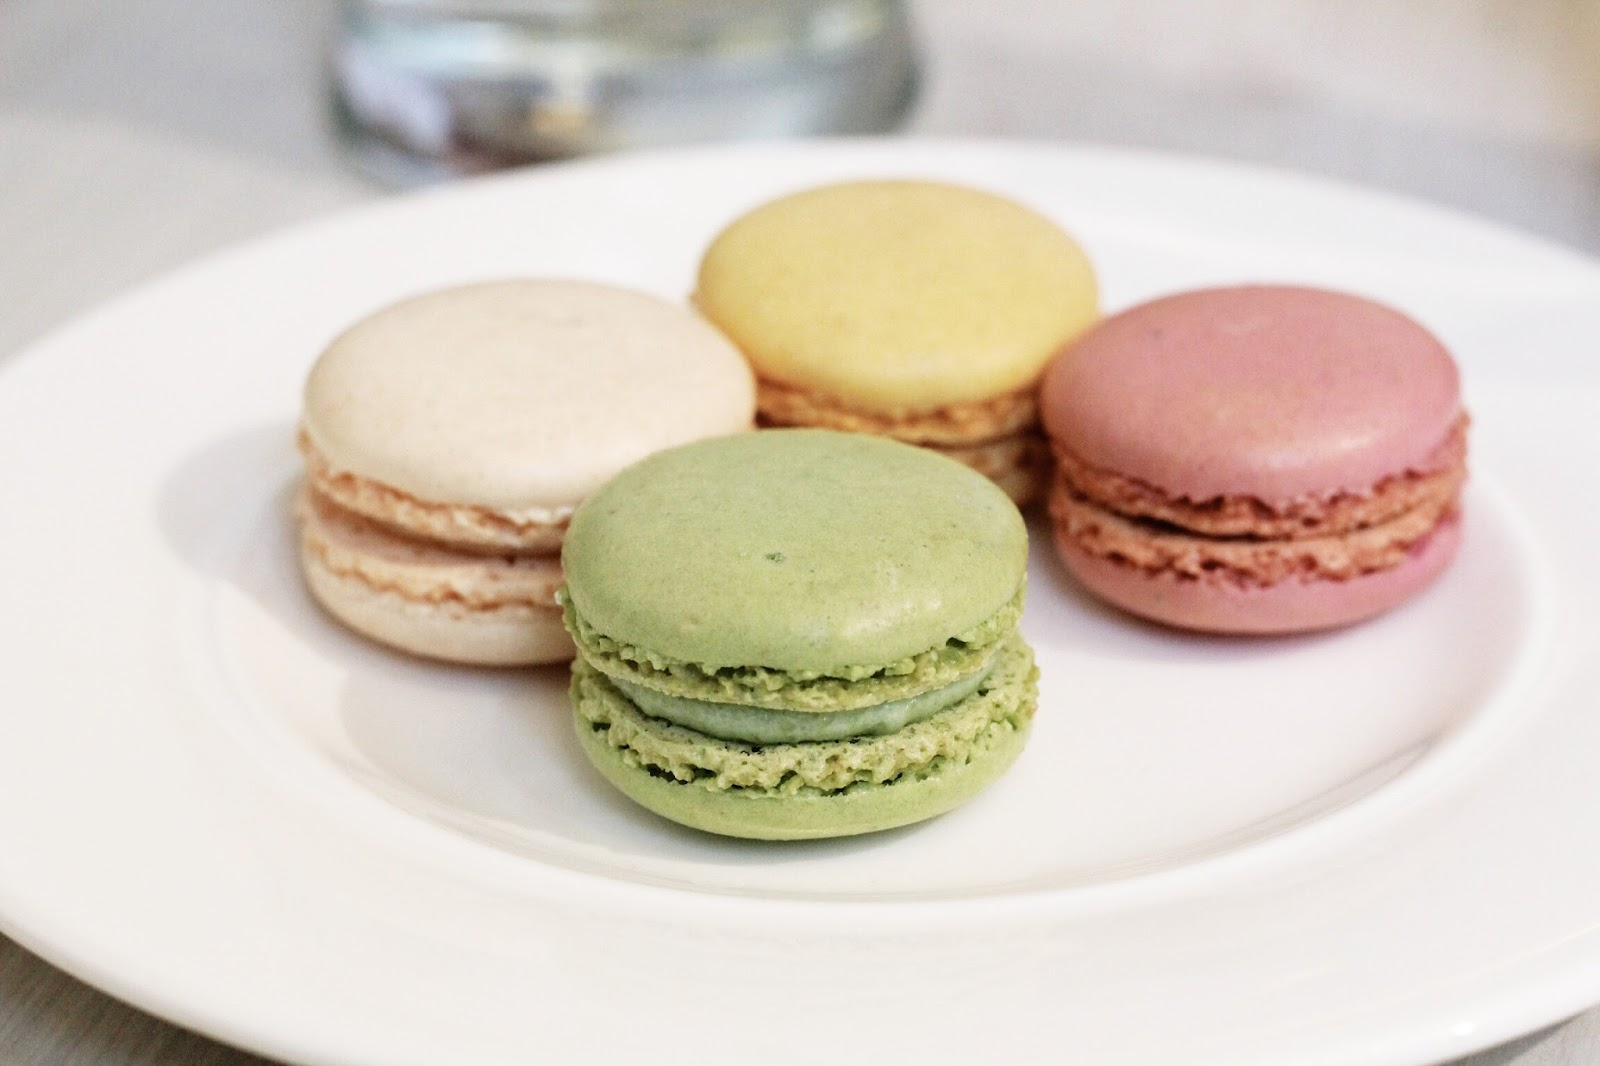 Selection of colourful pastel macarons